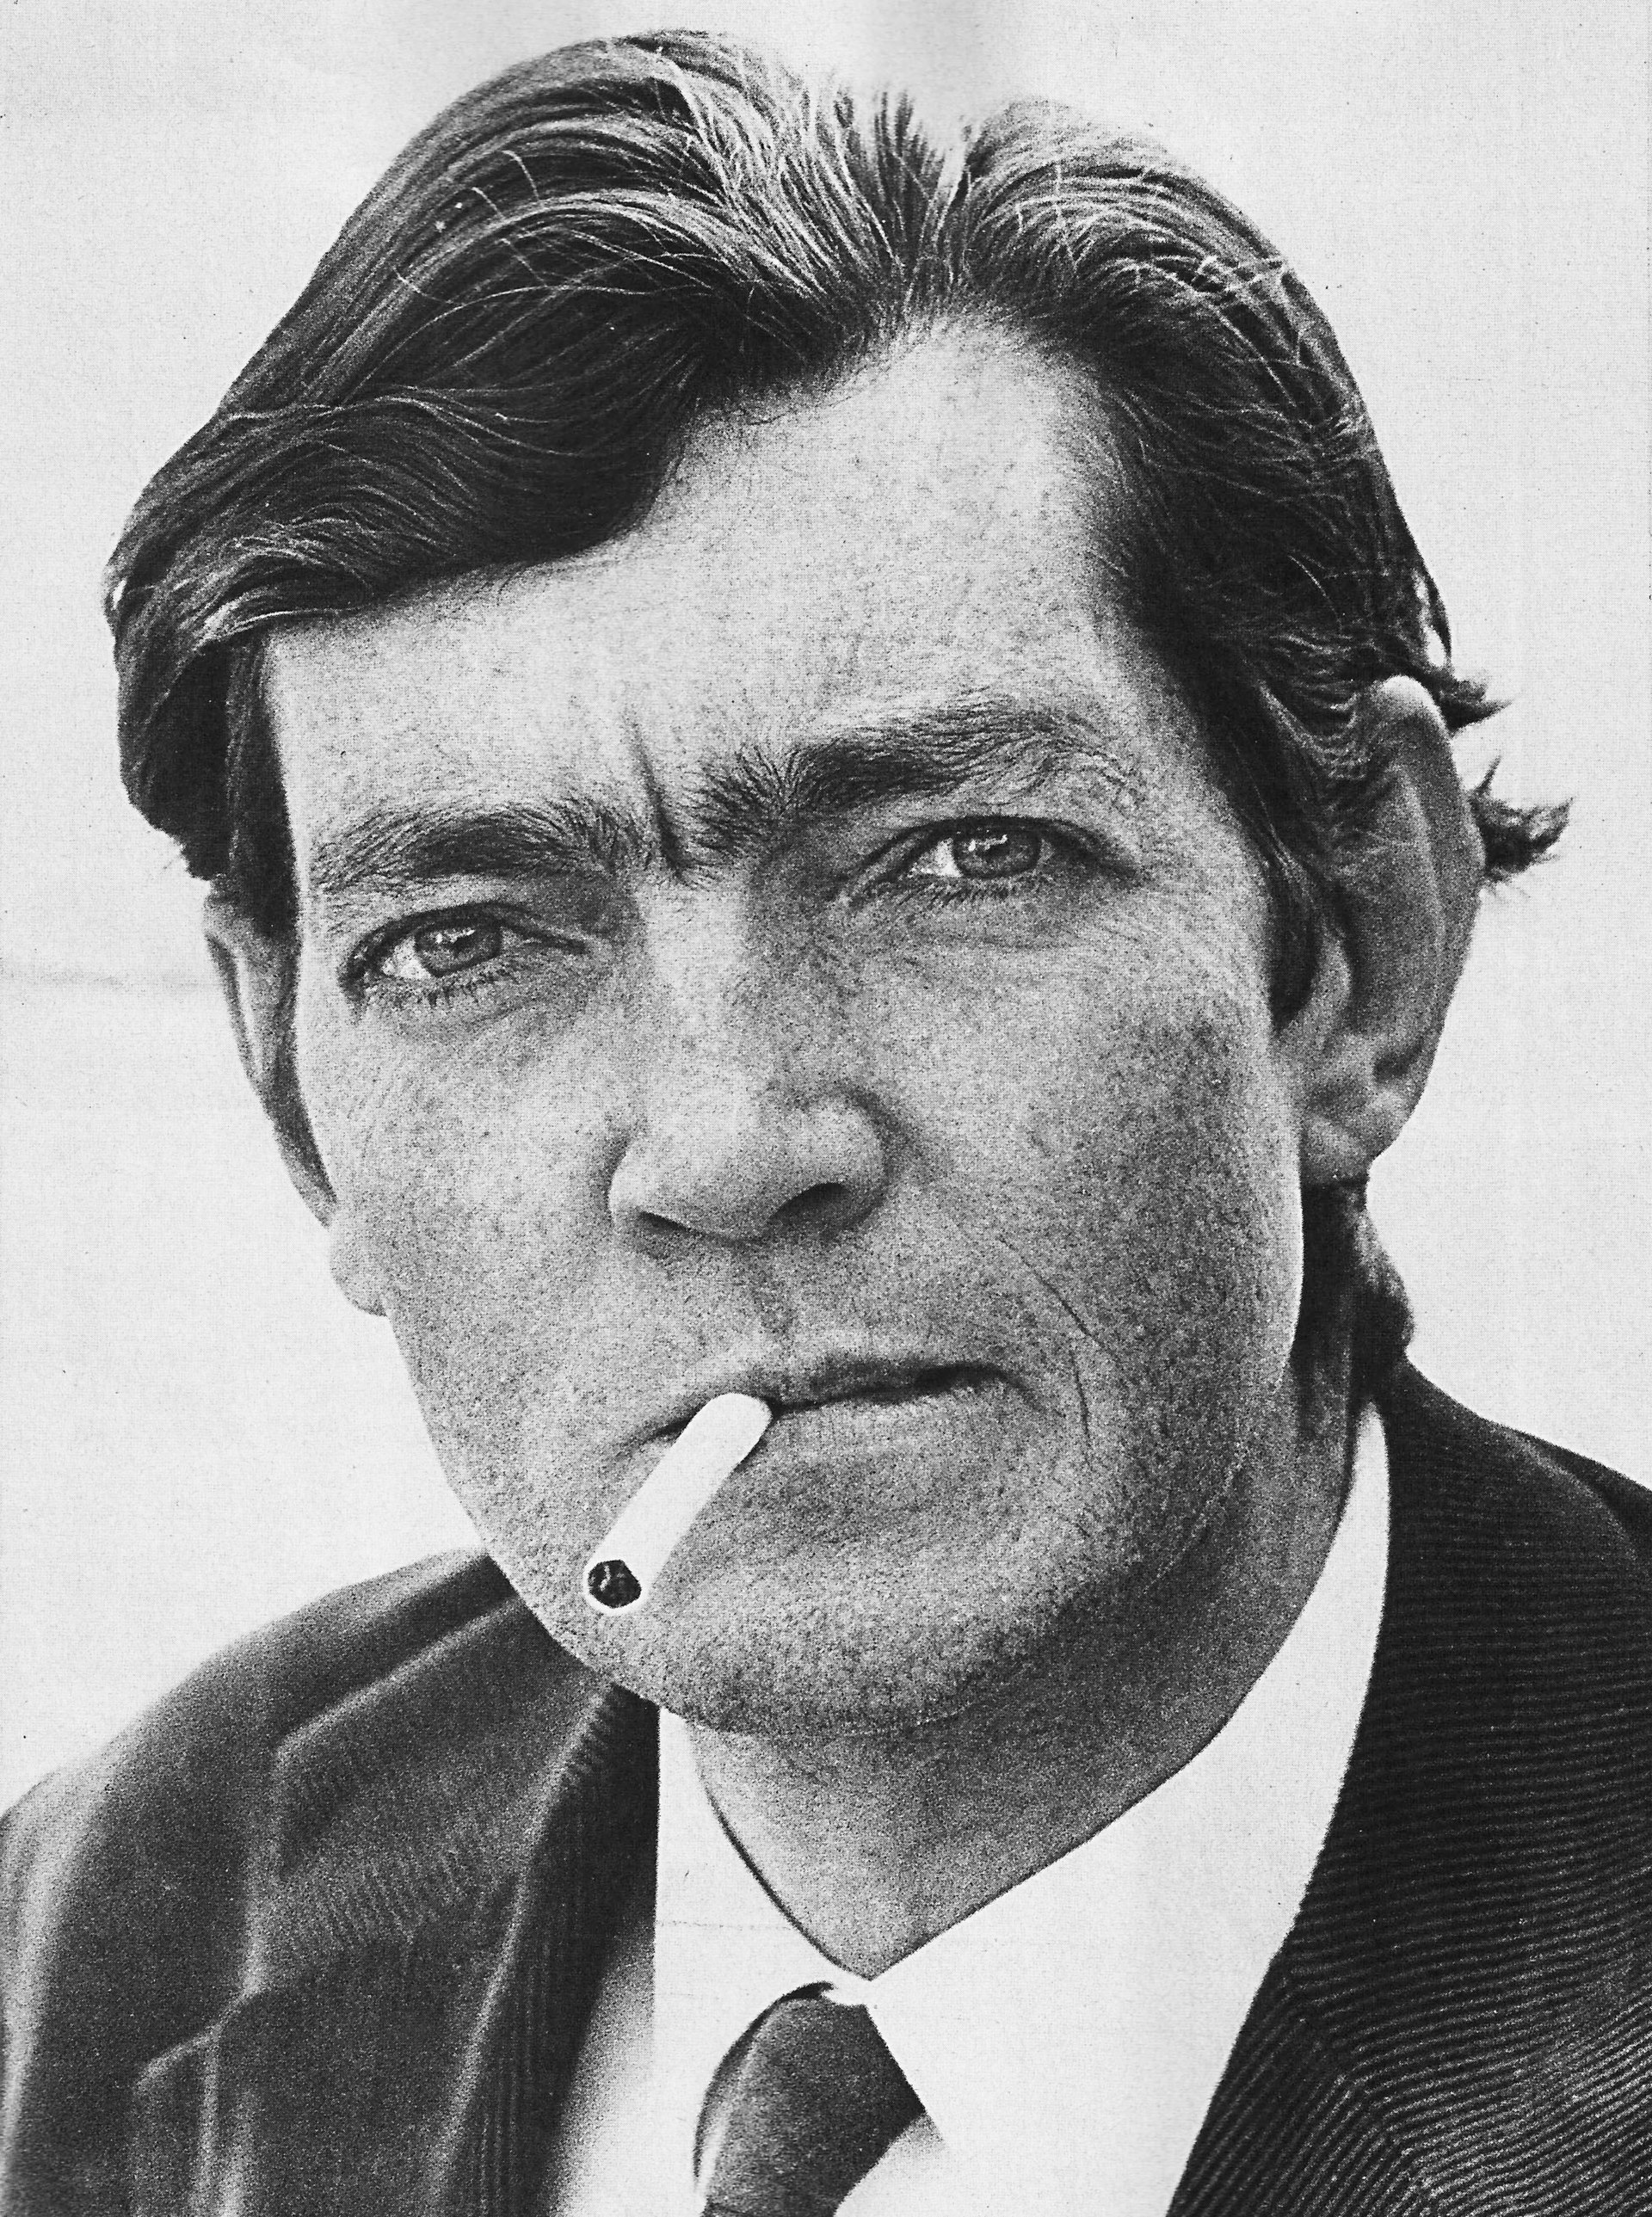 ashort biography of julio cort an argentinian writer Julio cortazar was an argentine writer who was born in belgium, grew up in argentina and later spent most of his life in france.